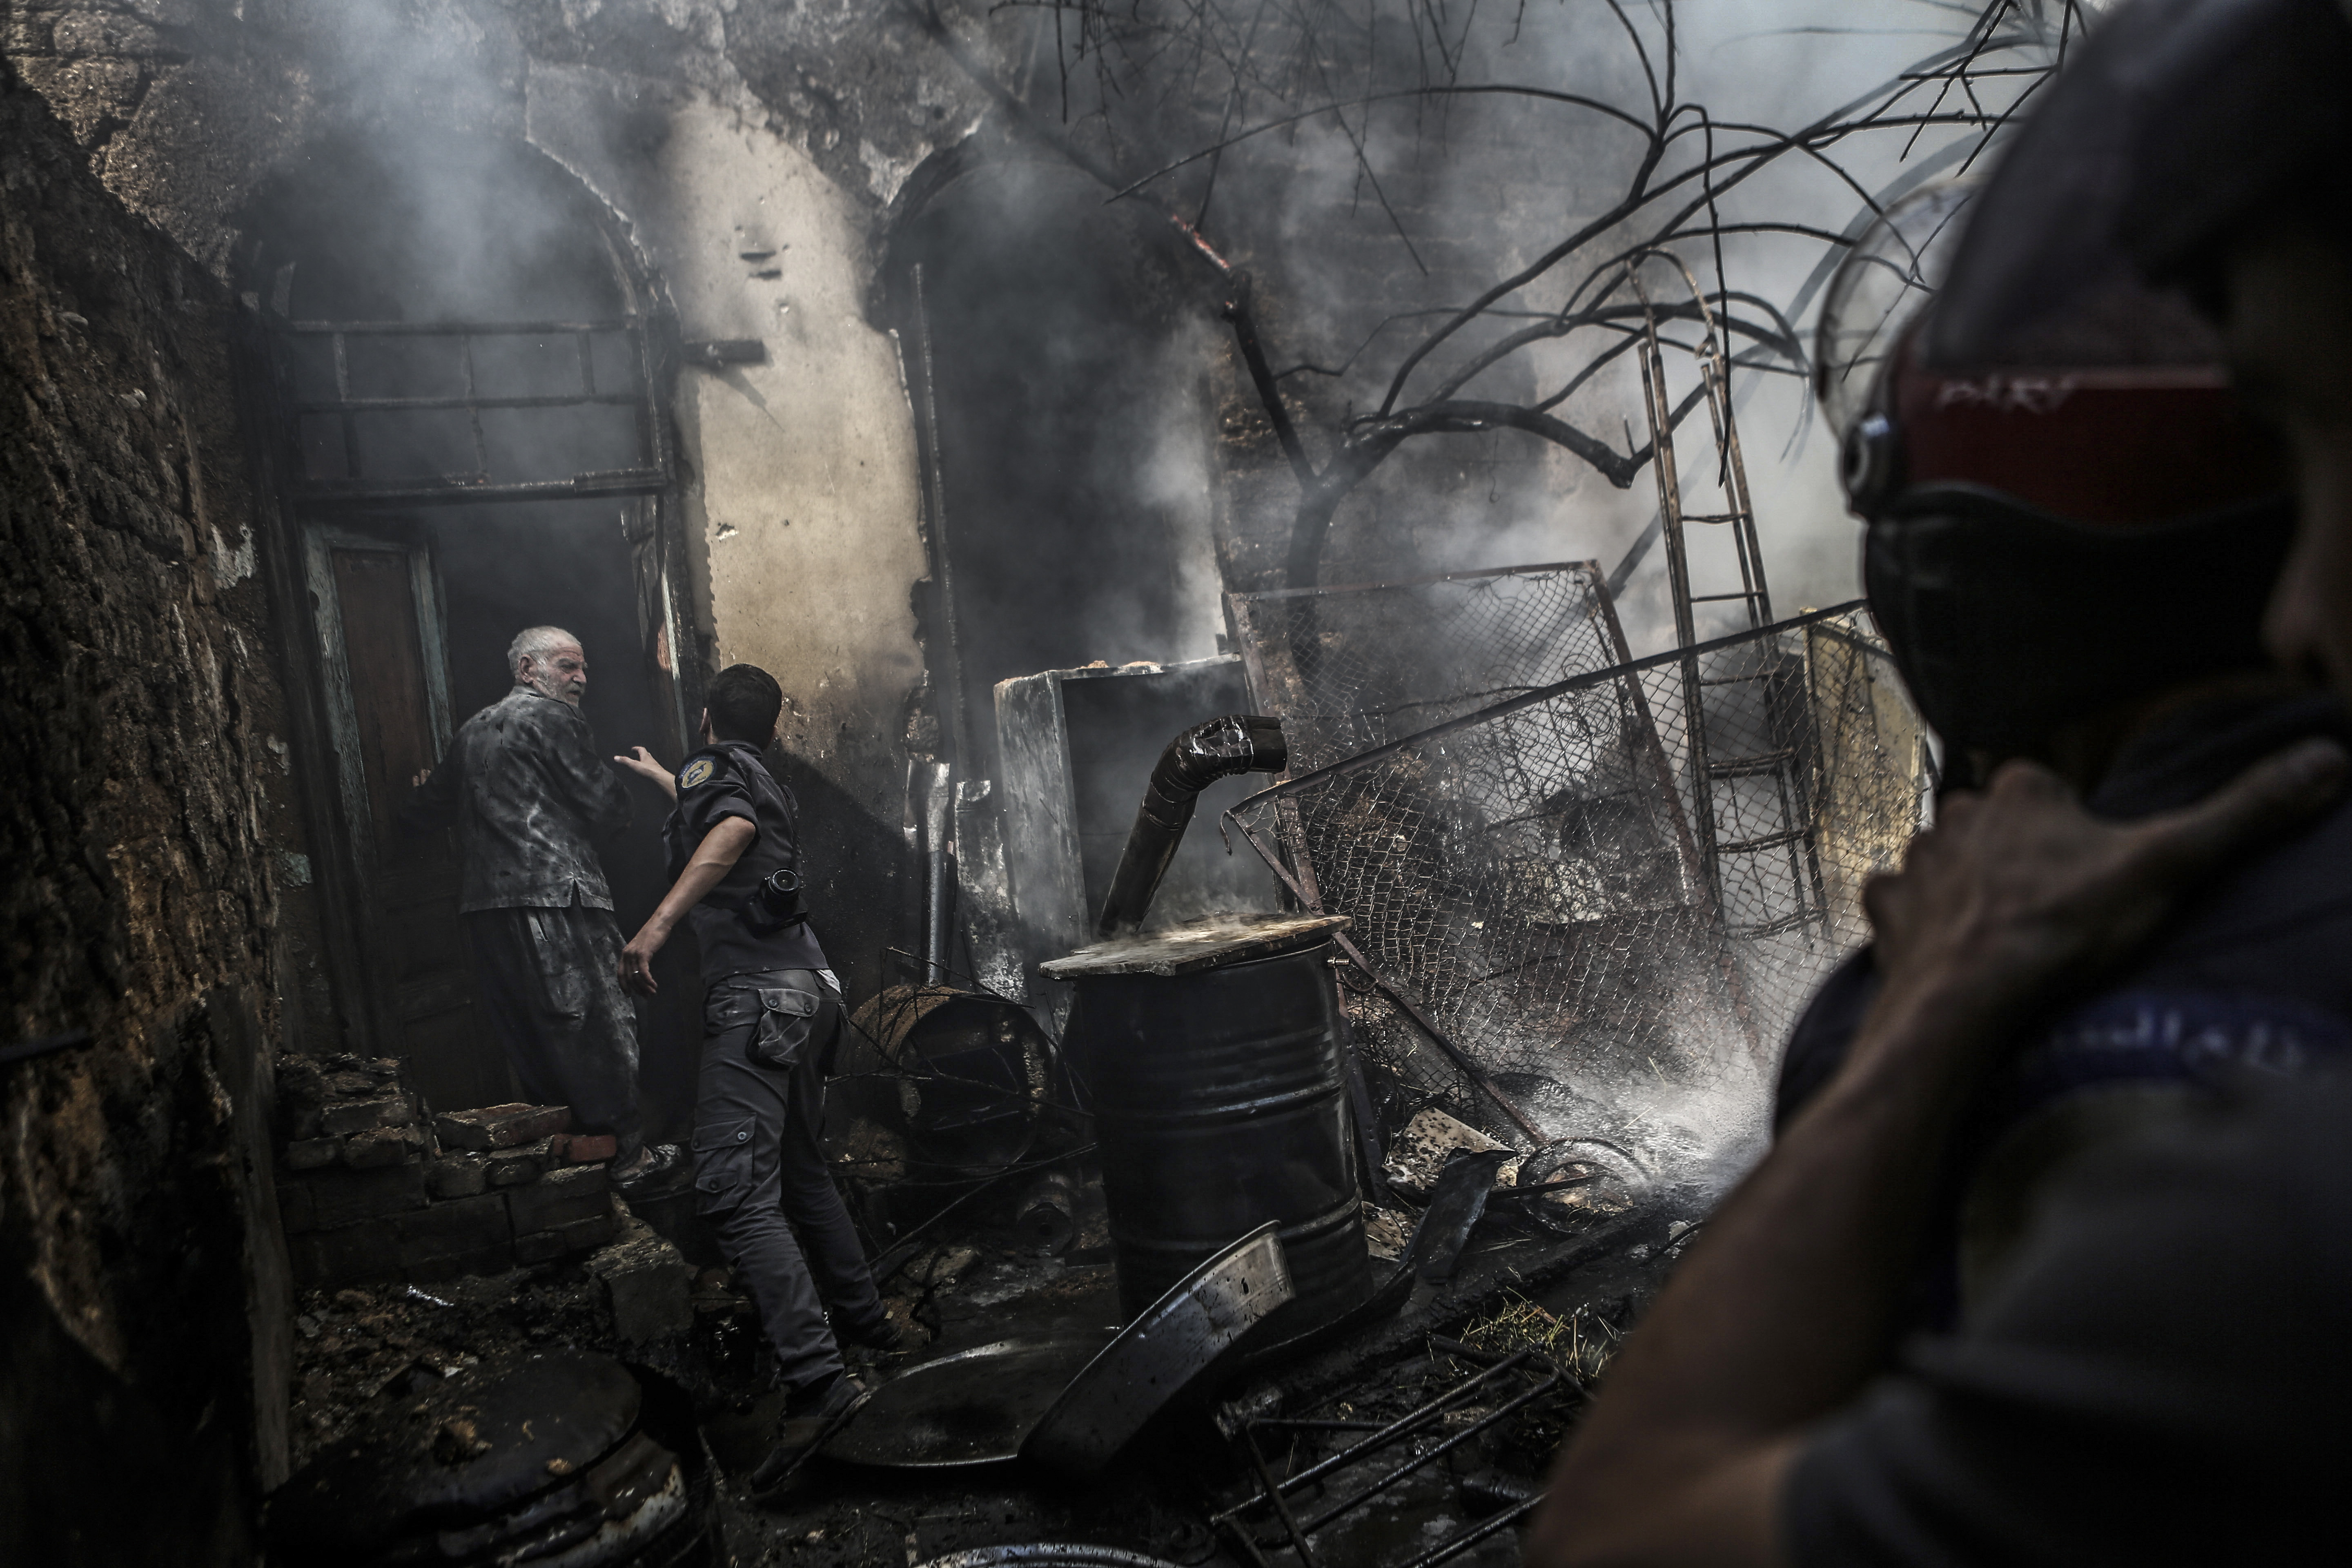 Syria White Helmets Rescue Workers Protect Aleppo